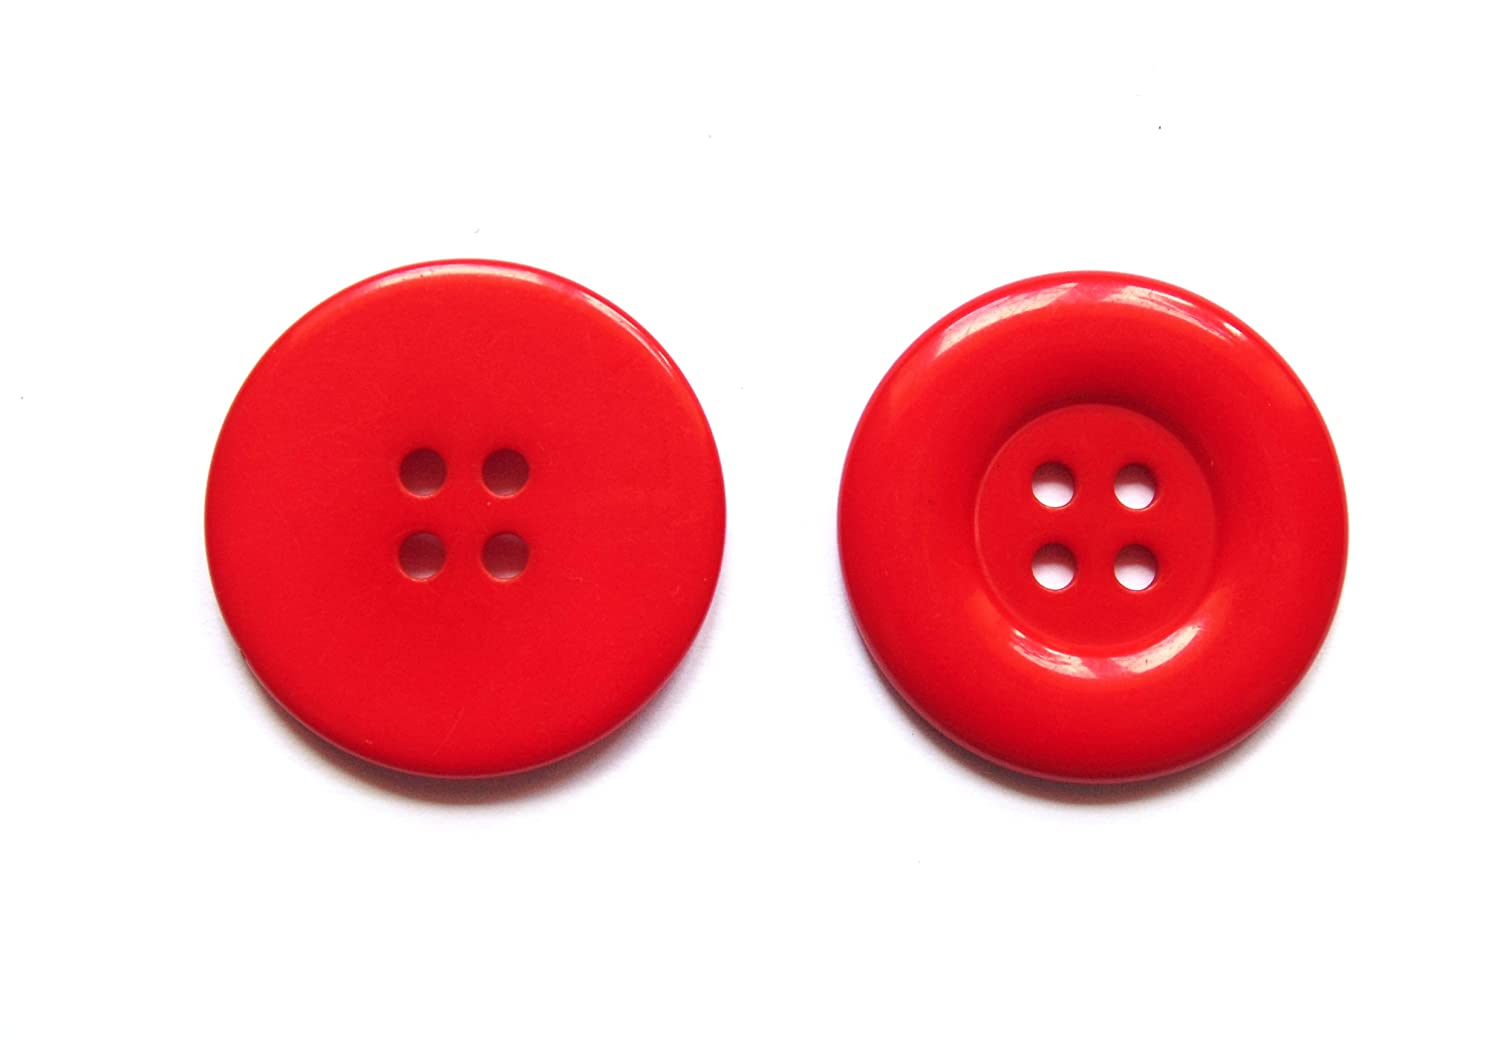 10 x 35mm Large Round Buttons (Red) Button Craft UK